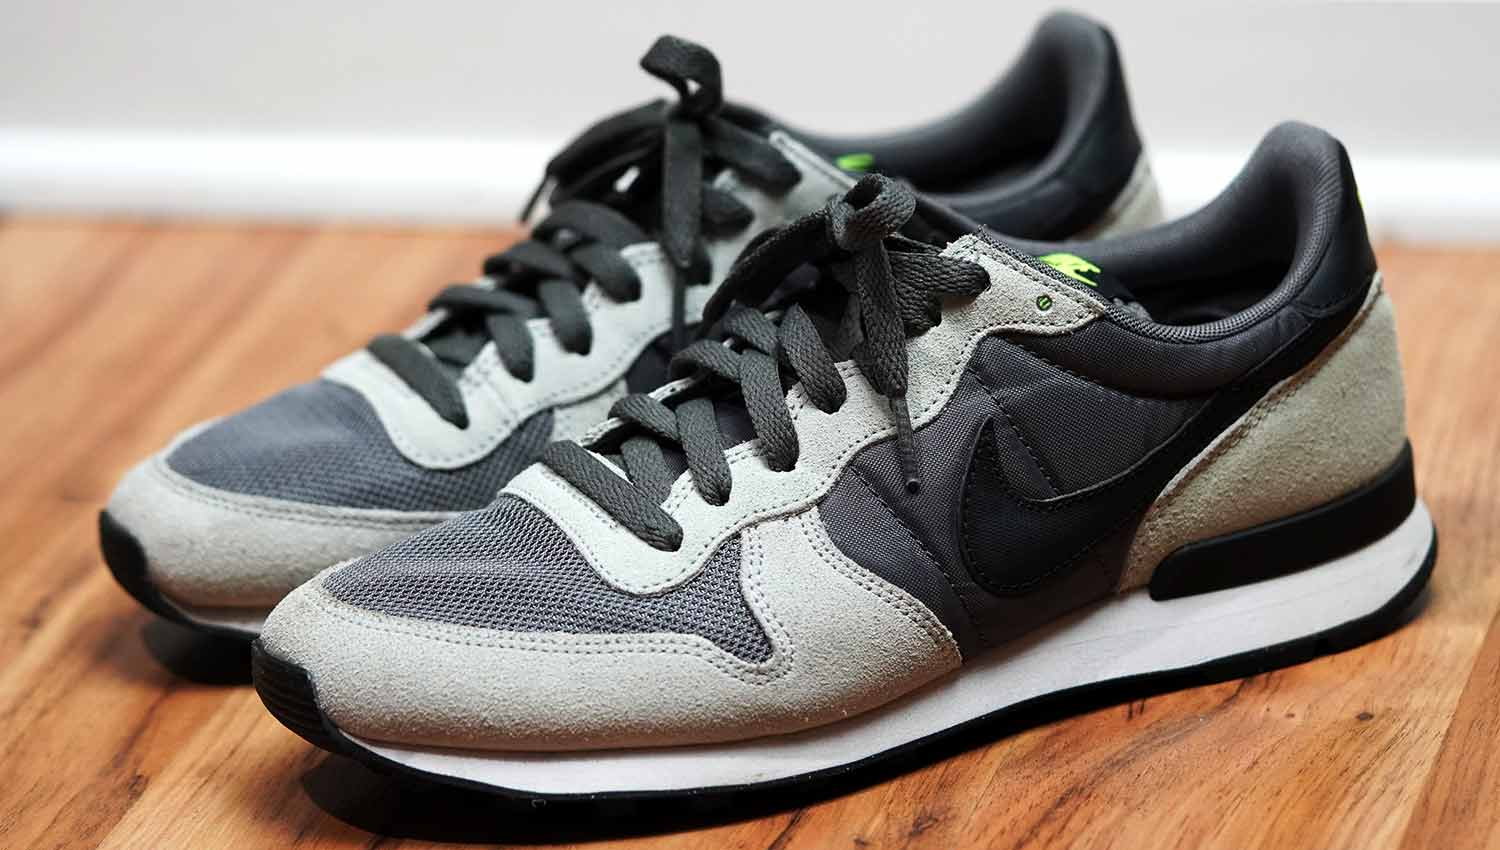 Nike Internationalist Review and